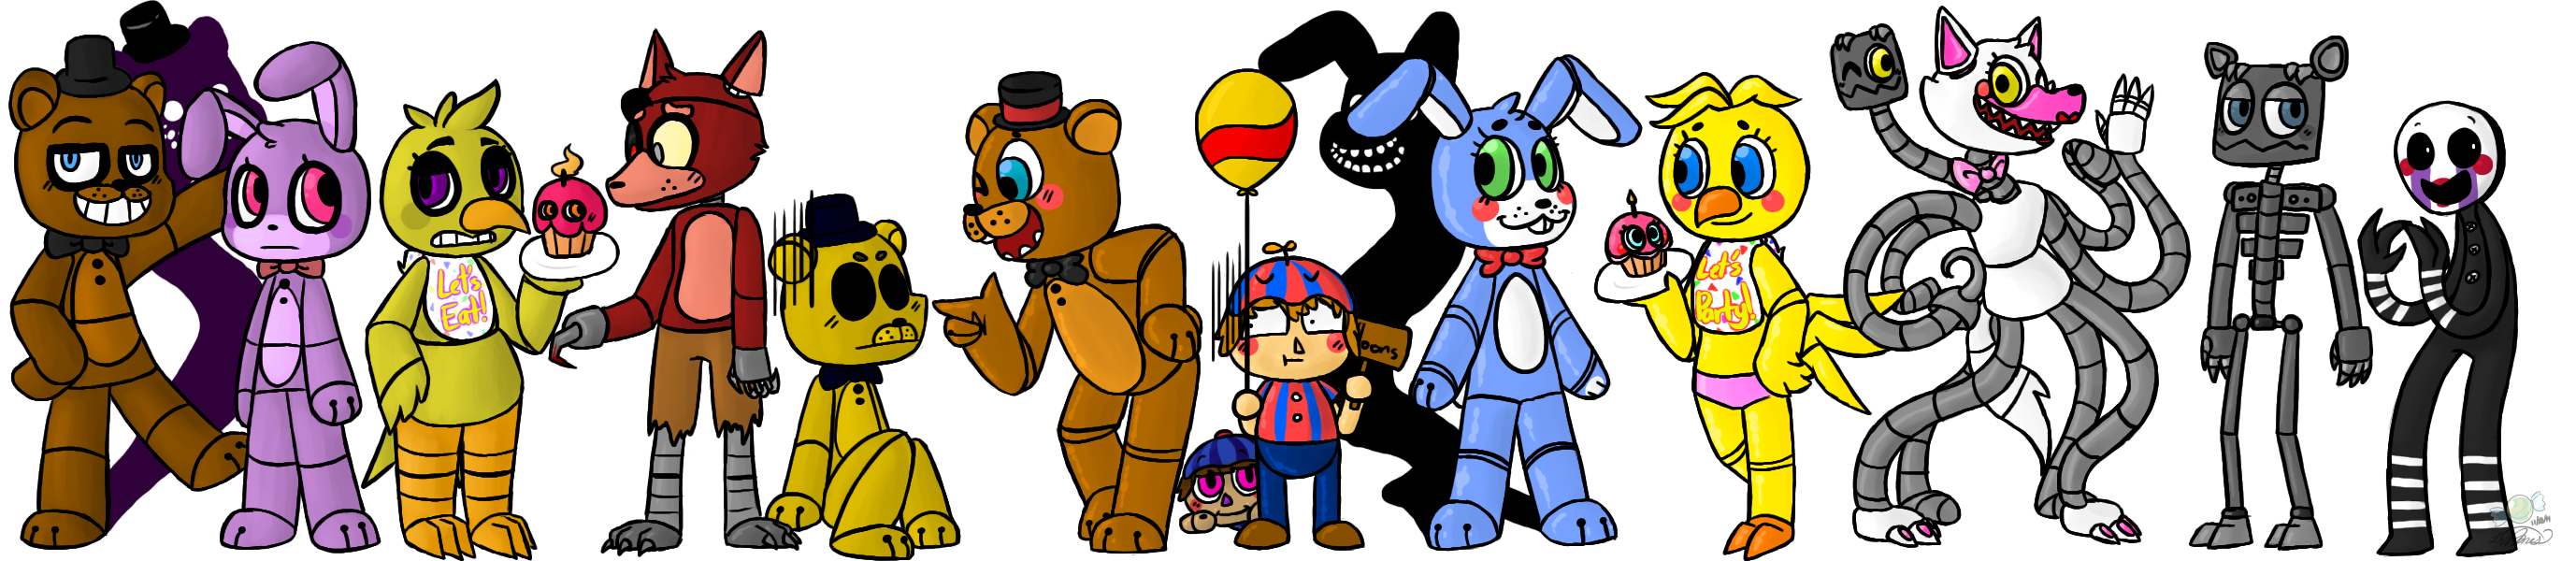 five nights at freddys 2 by candykidneys